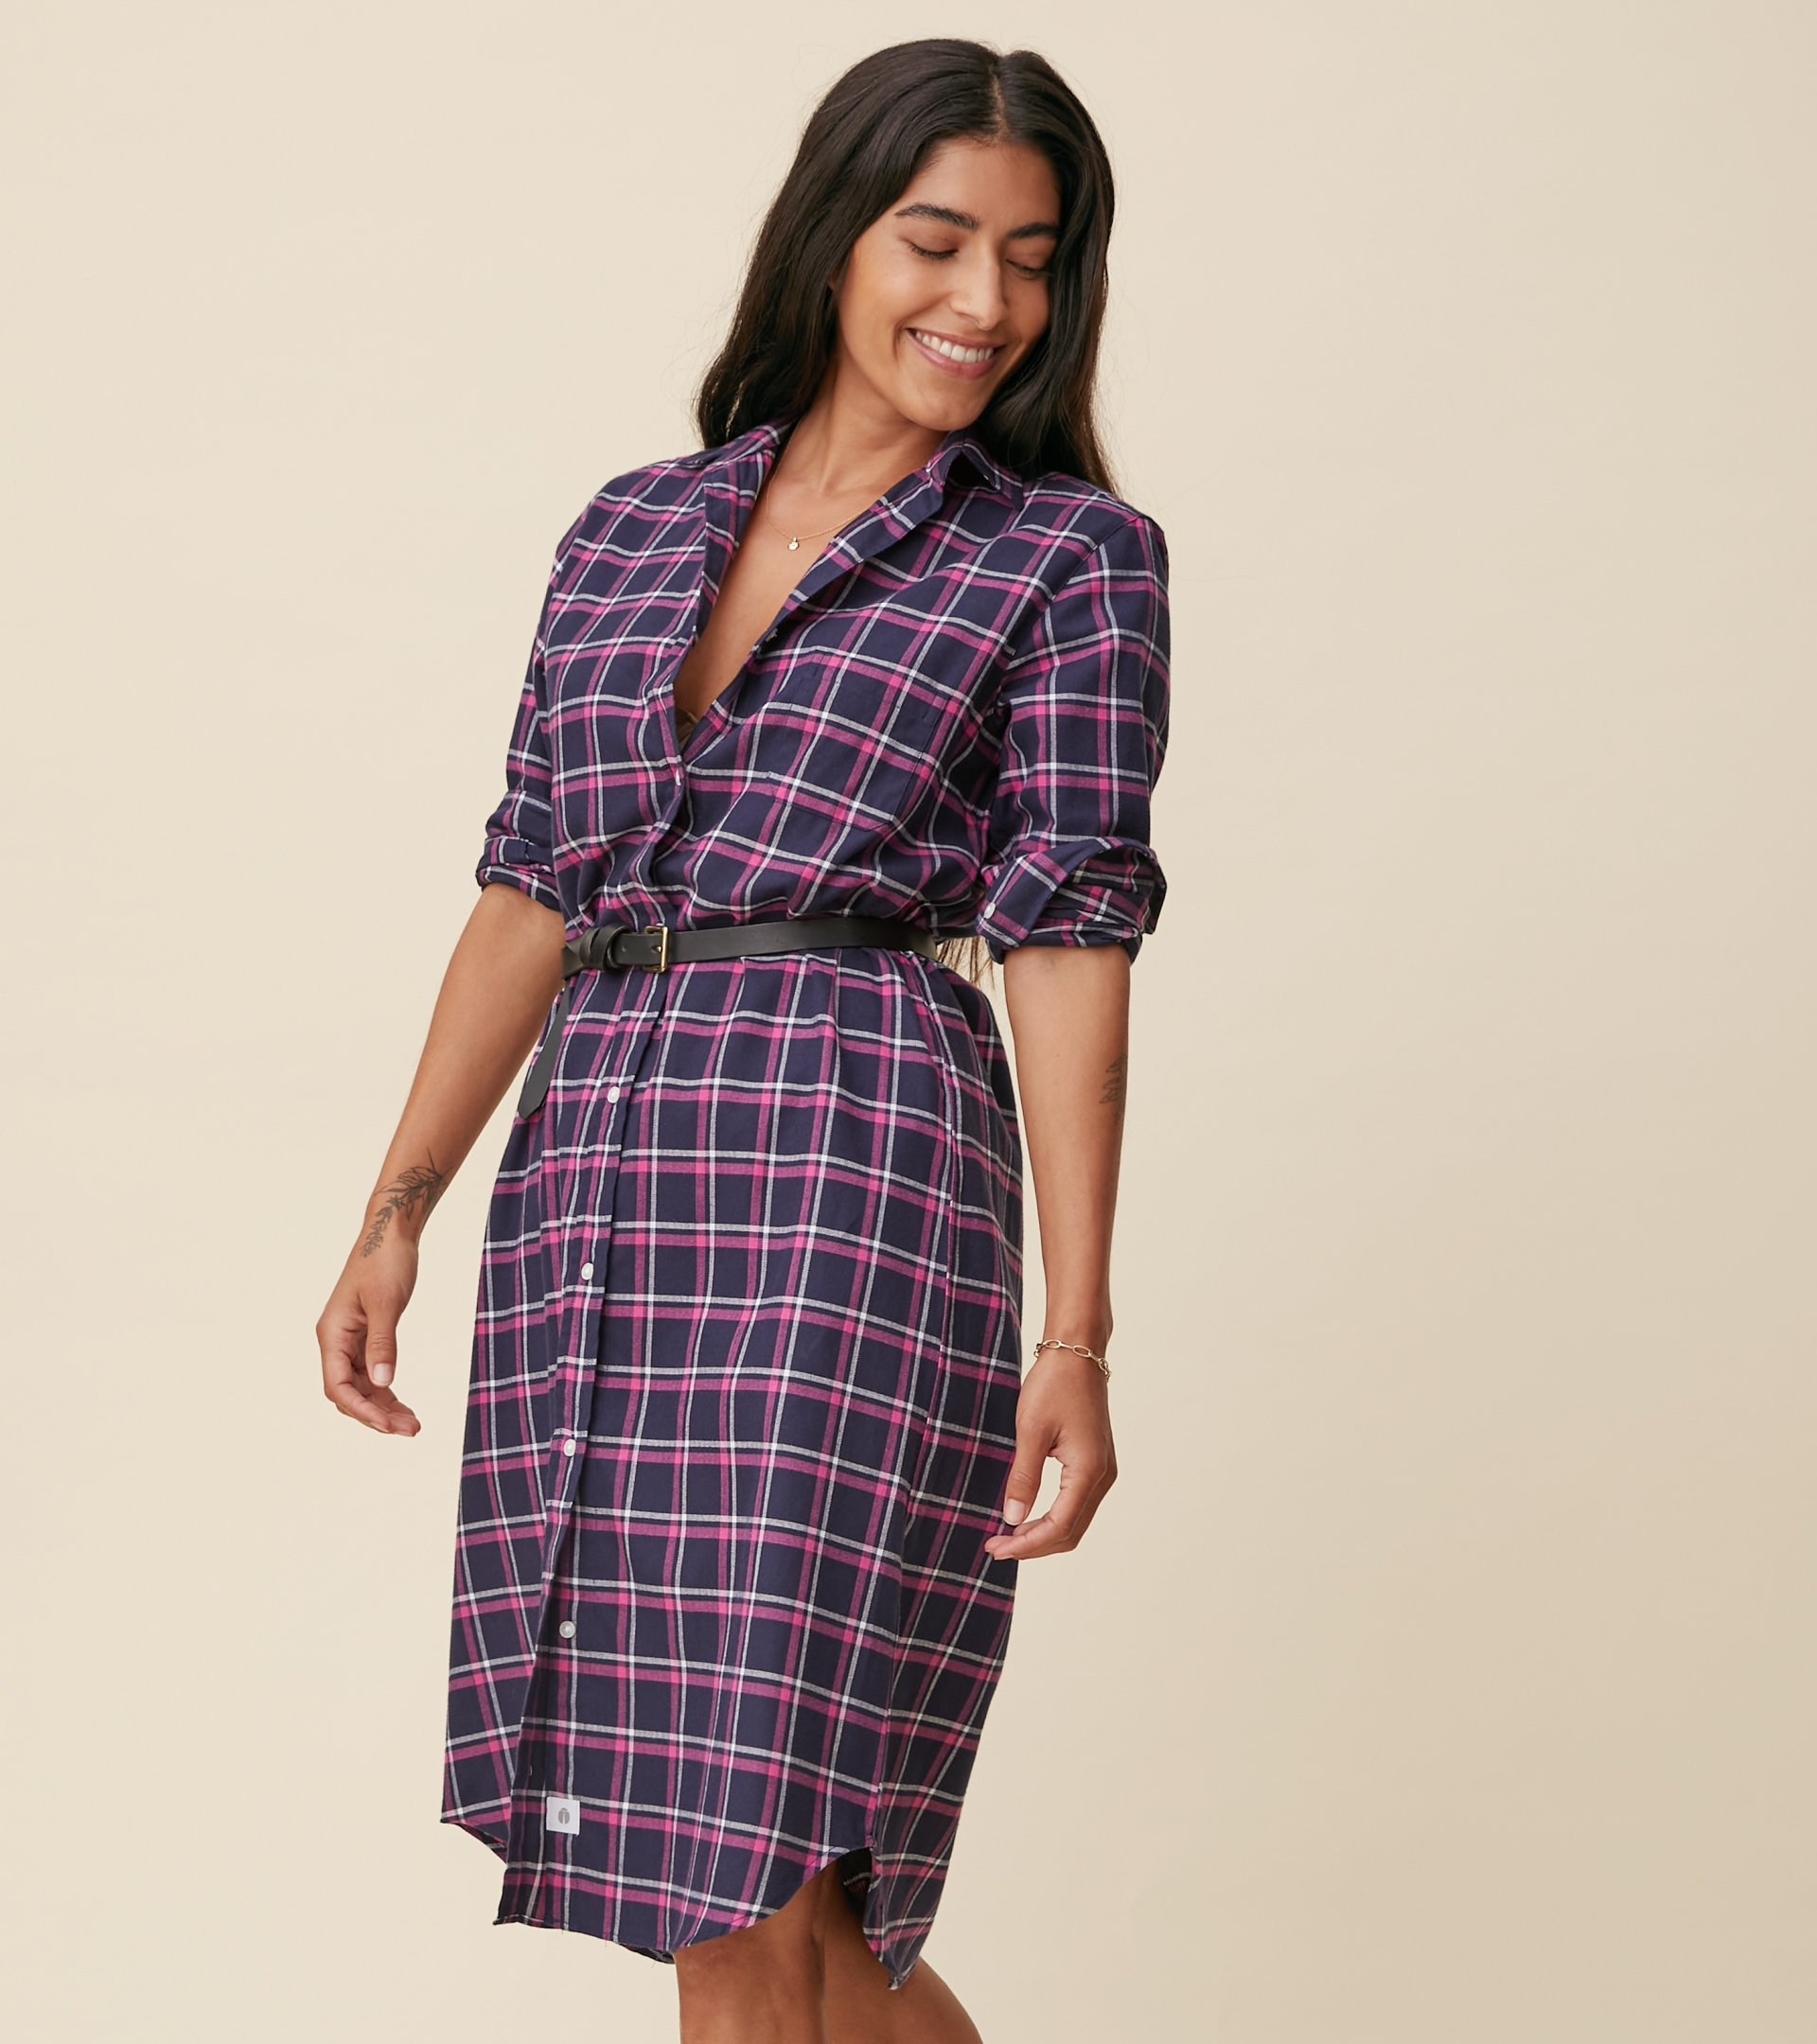 Image of The Hero Midi Dress Navy, Pink, and White Plaid, Feathered Flannel